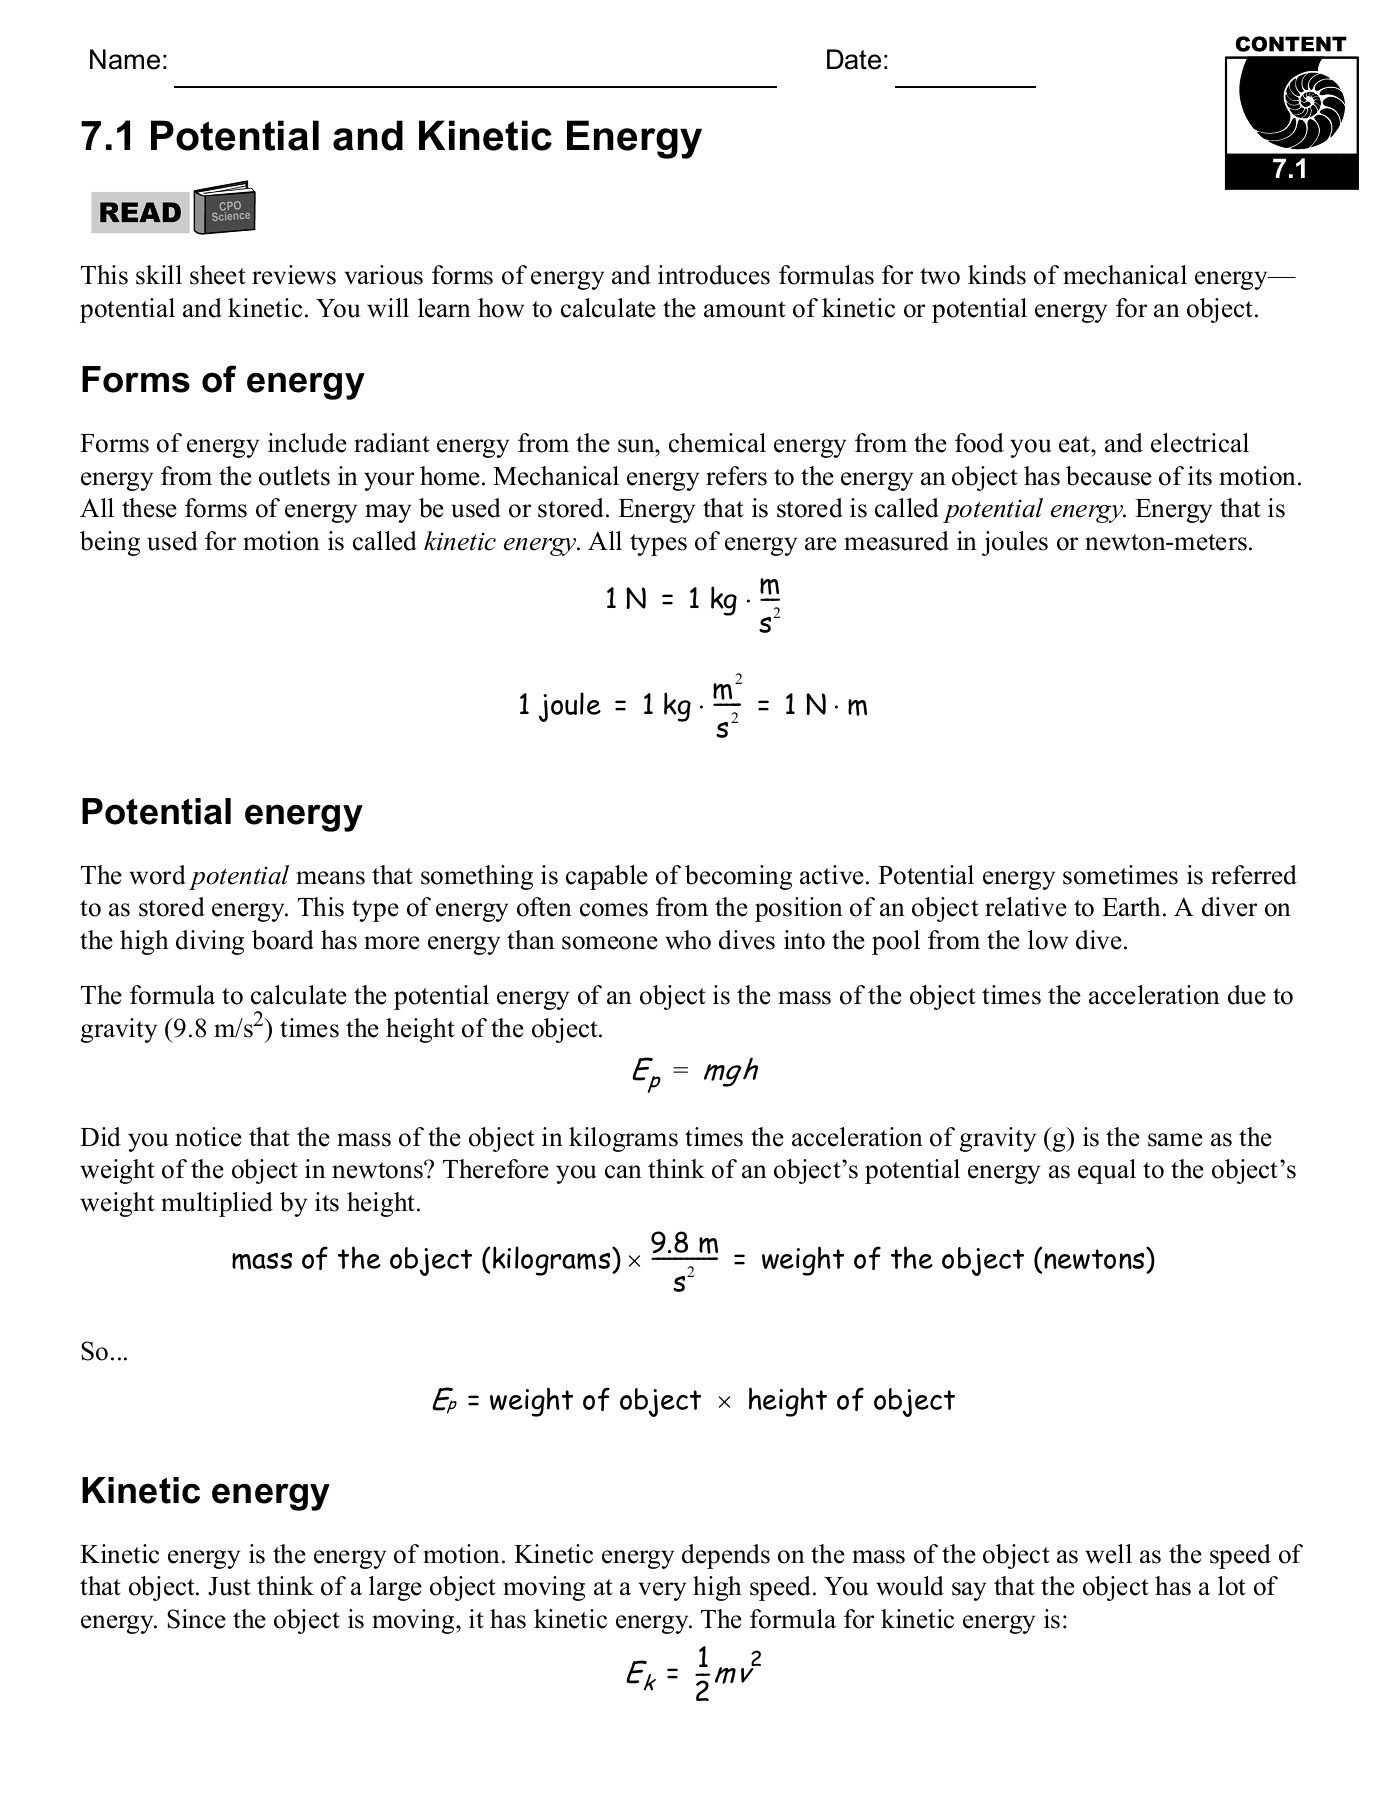 71 Potential And Kinetic Energy Cpo Science